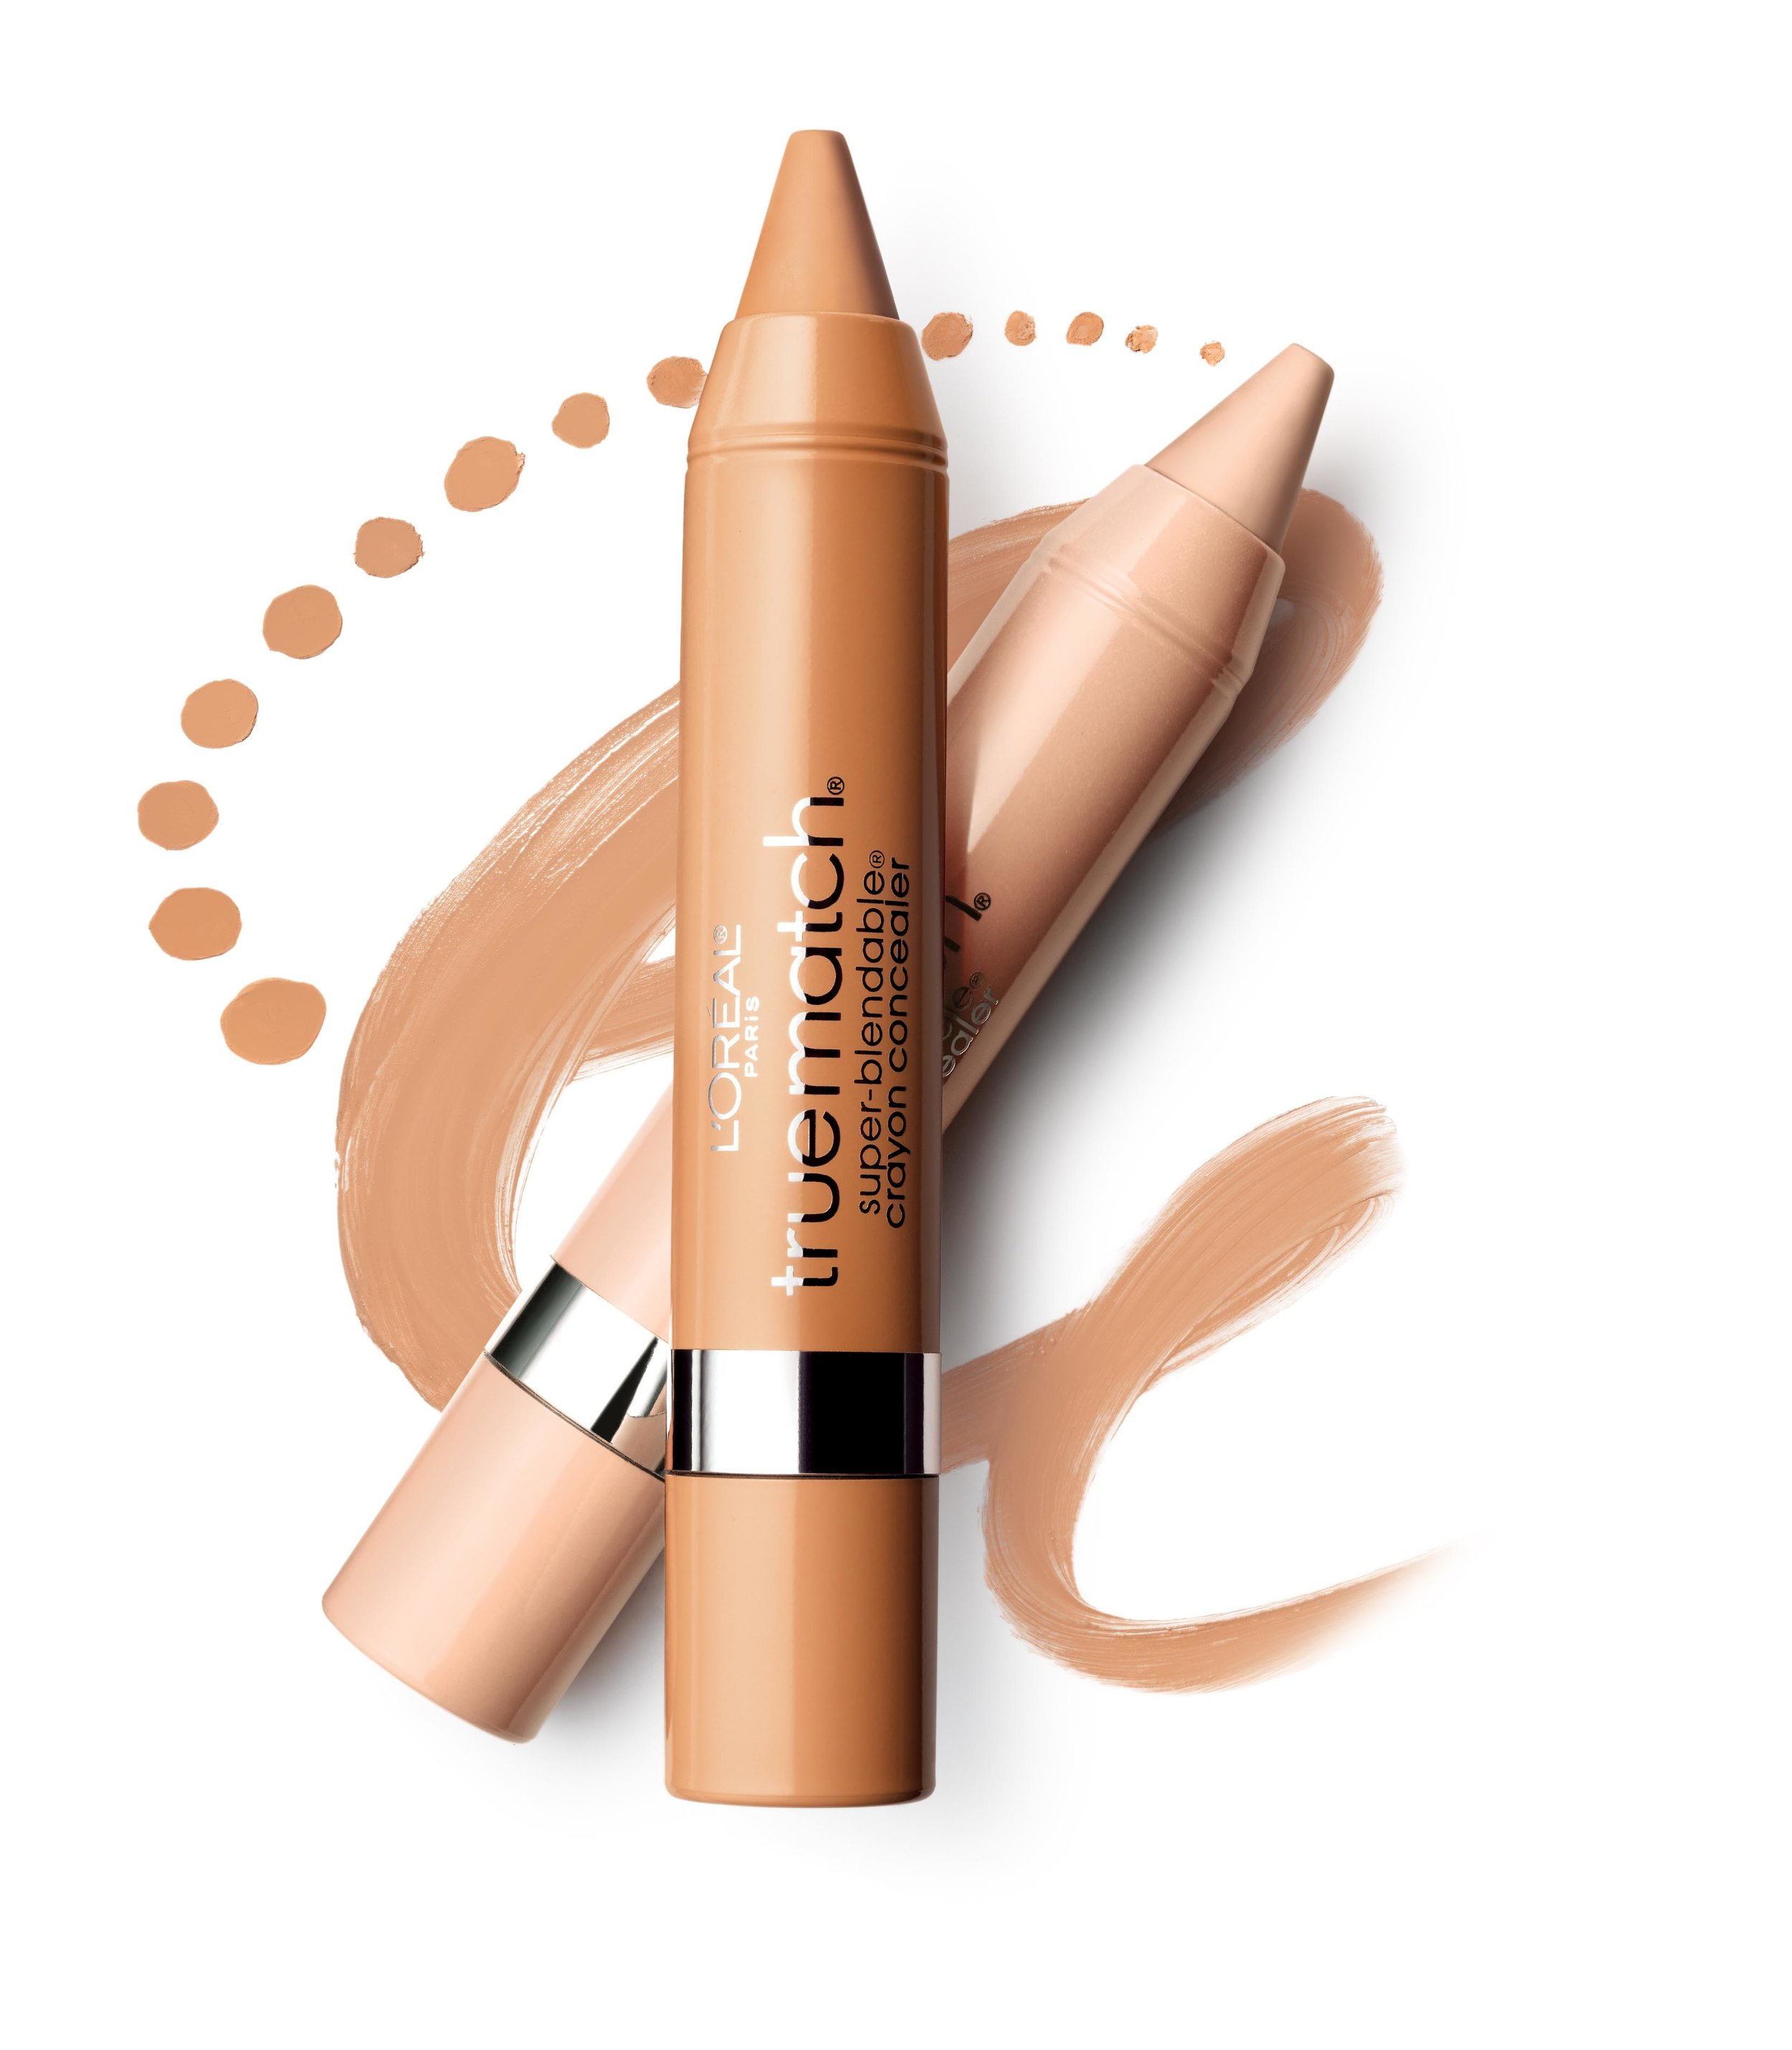 LOreal-Paris-True-Match-Crayon-Concealer-Duo-1.jpg